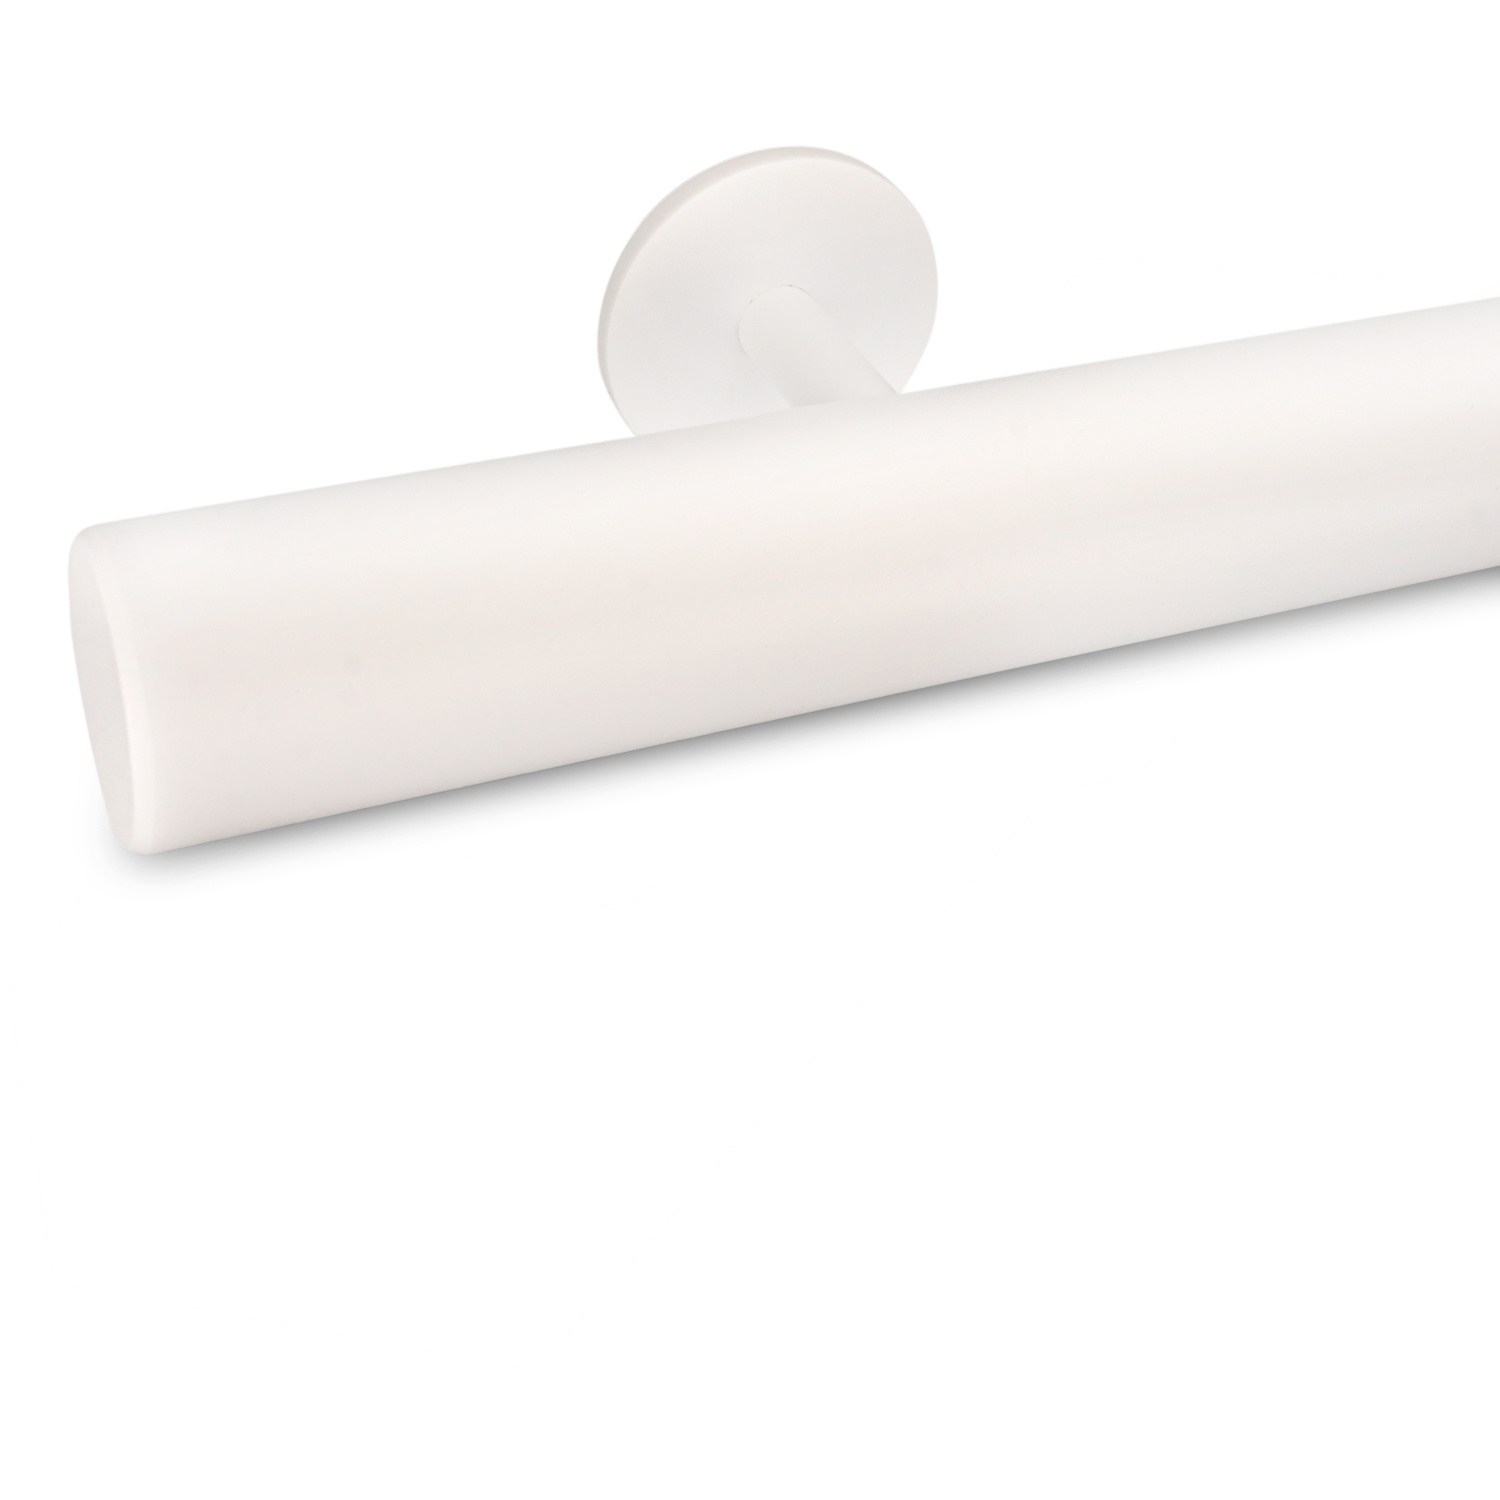 Witte trapleuning gecoat rond incl. dragers TYPE 5 - fijnstructuur poedercoating RAL 9010 mat wit